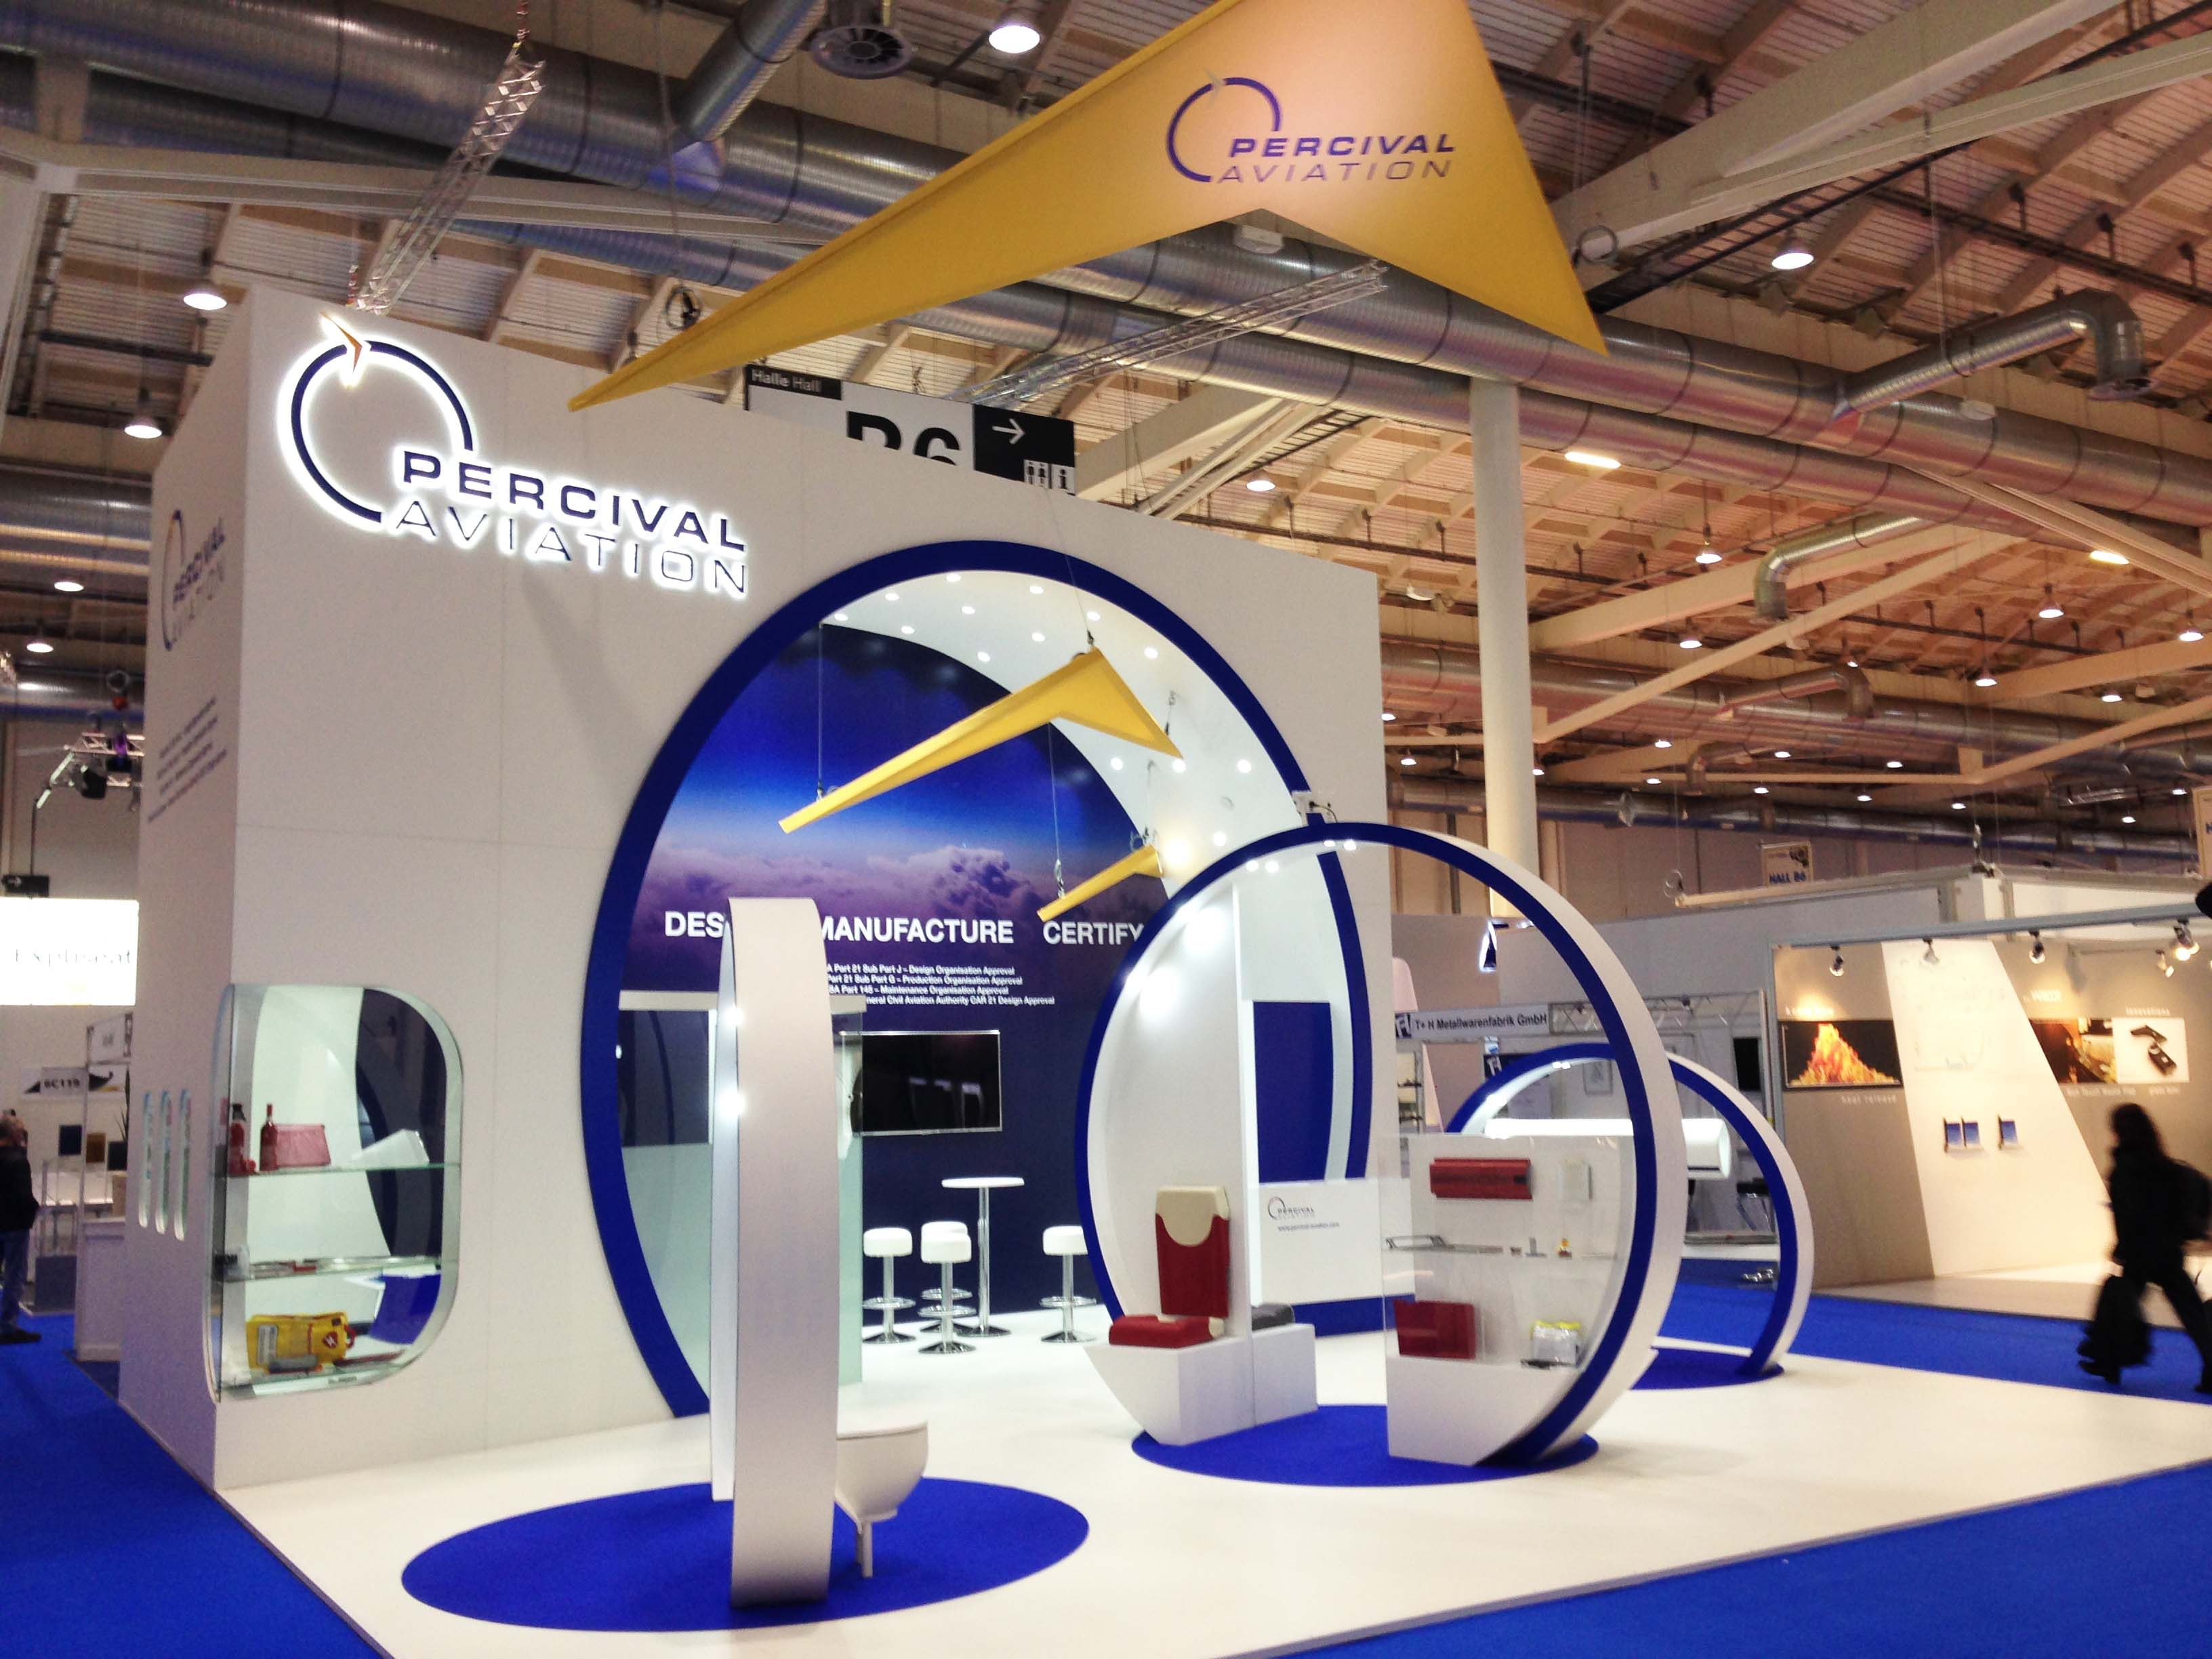 Exhibition Stand Circle : Percival aviation s stand new exhibition booth design booth